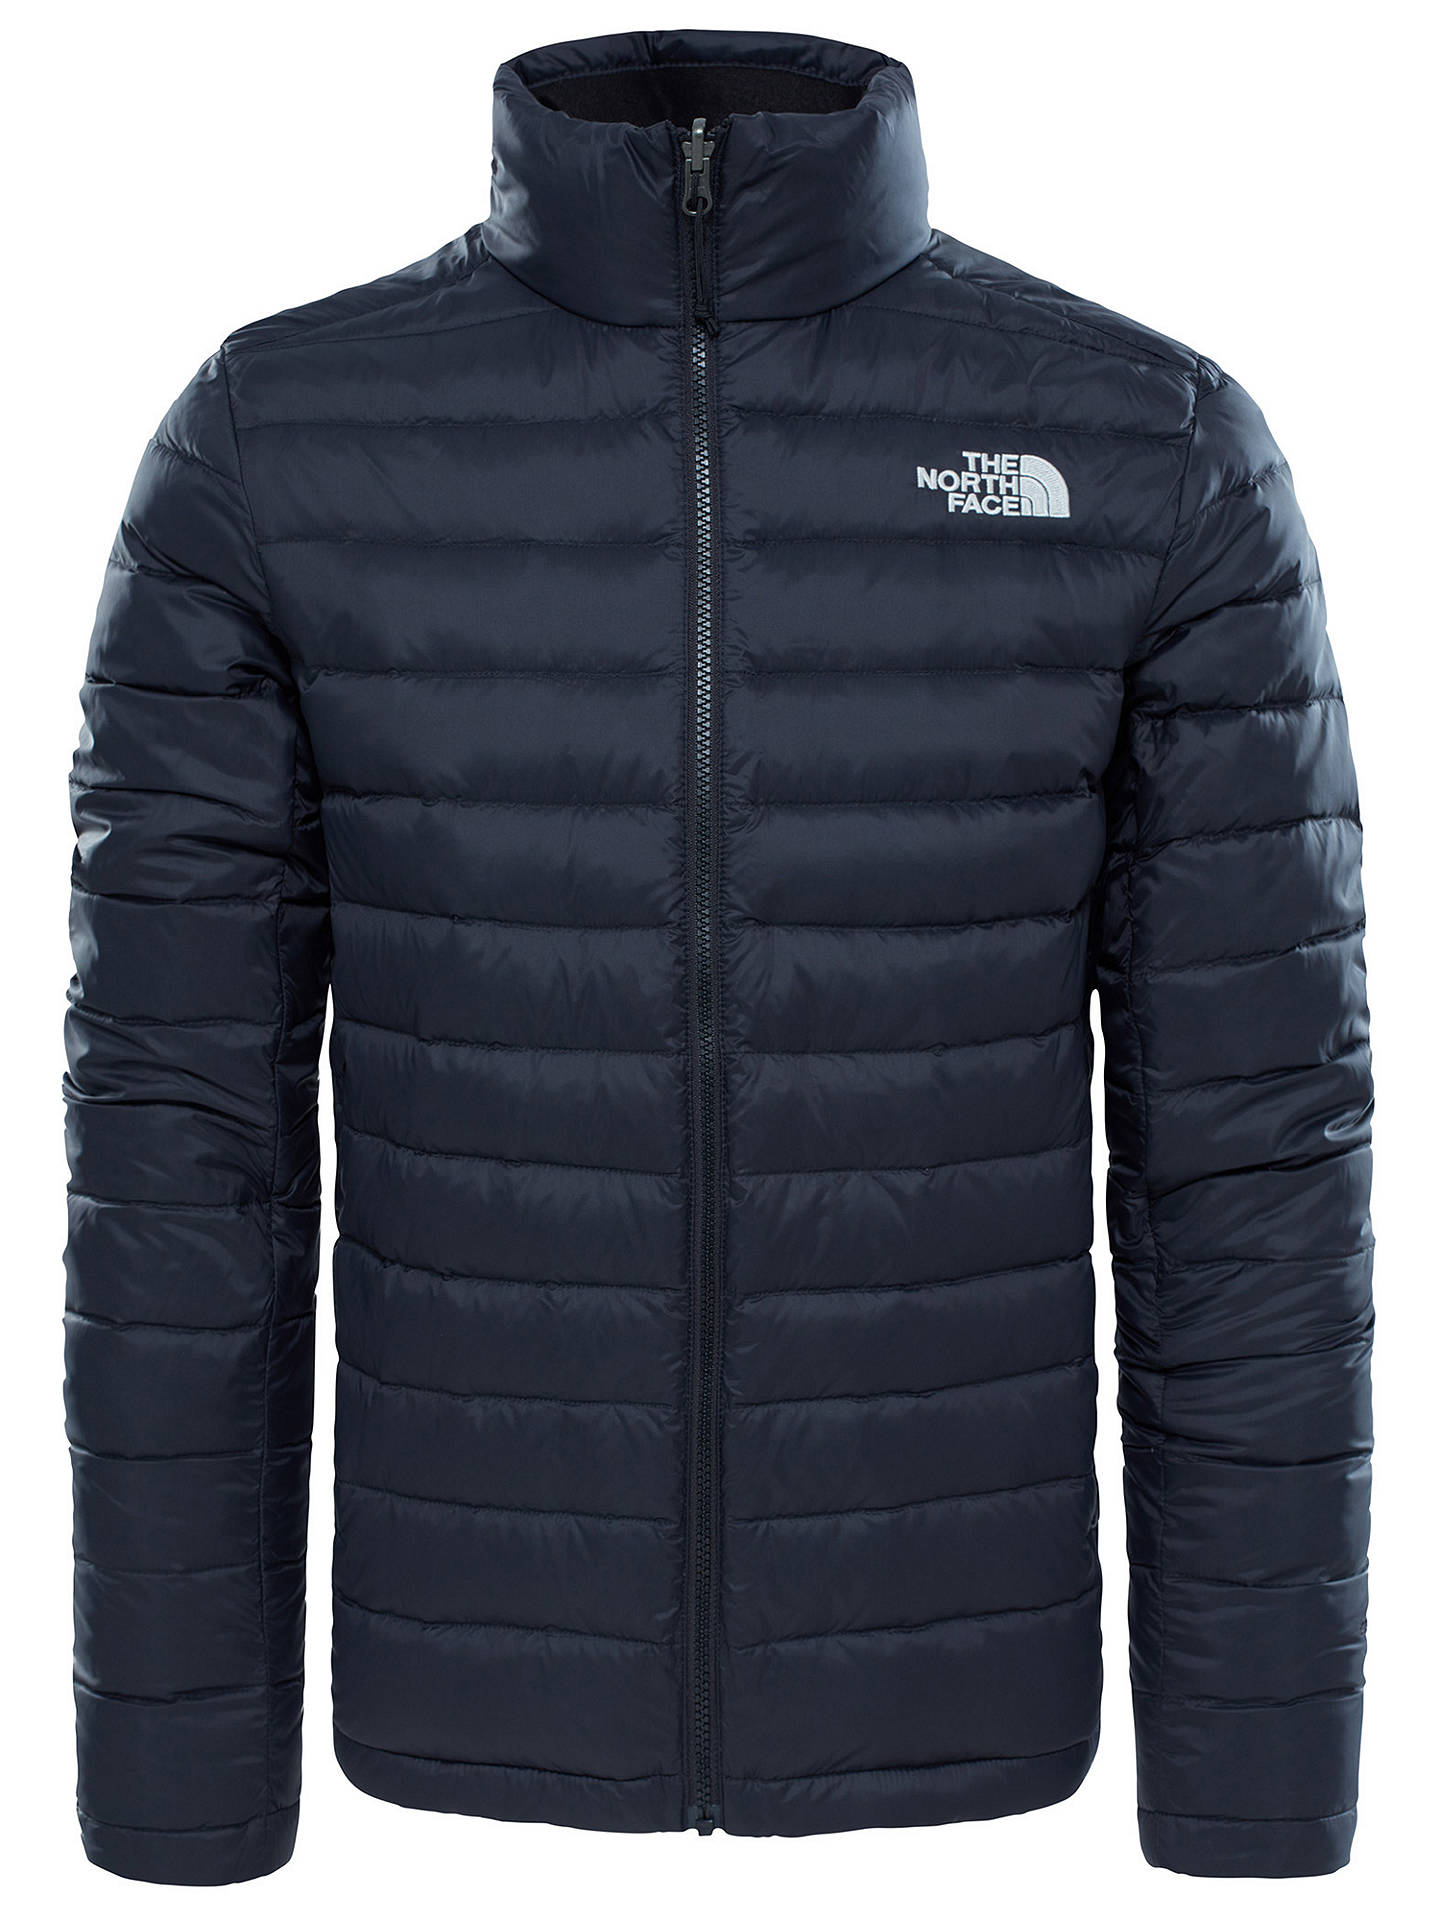 Buy The North Face Mountain Triclimate Men's Jacket, Black, S Online at johnlewis.com